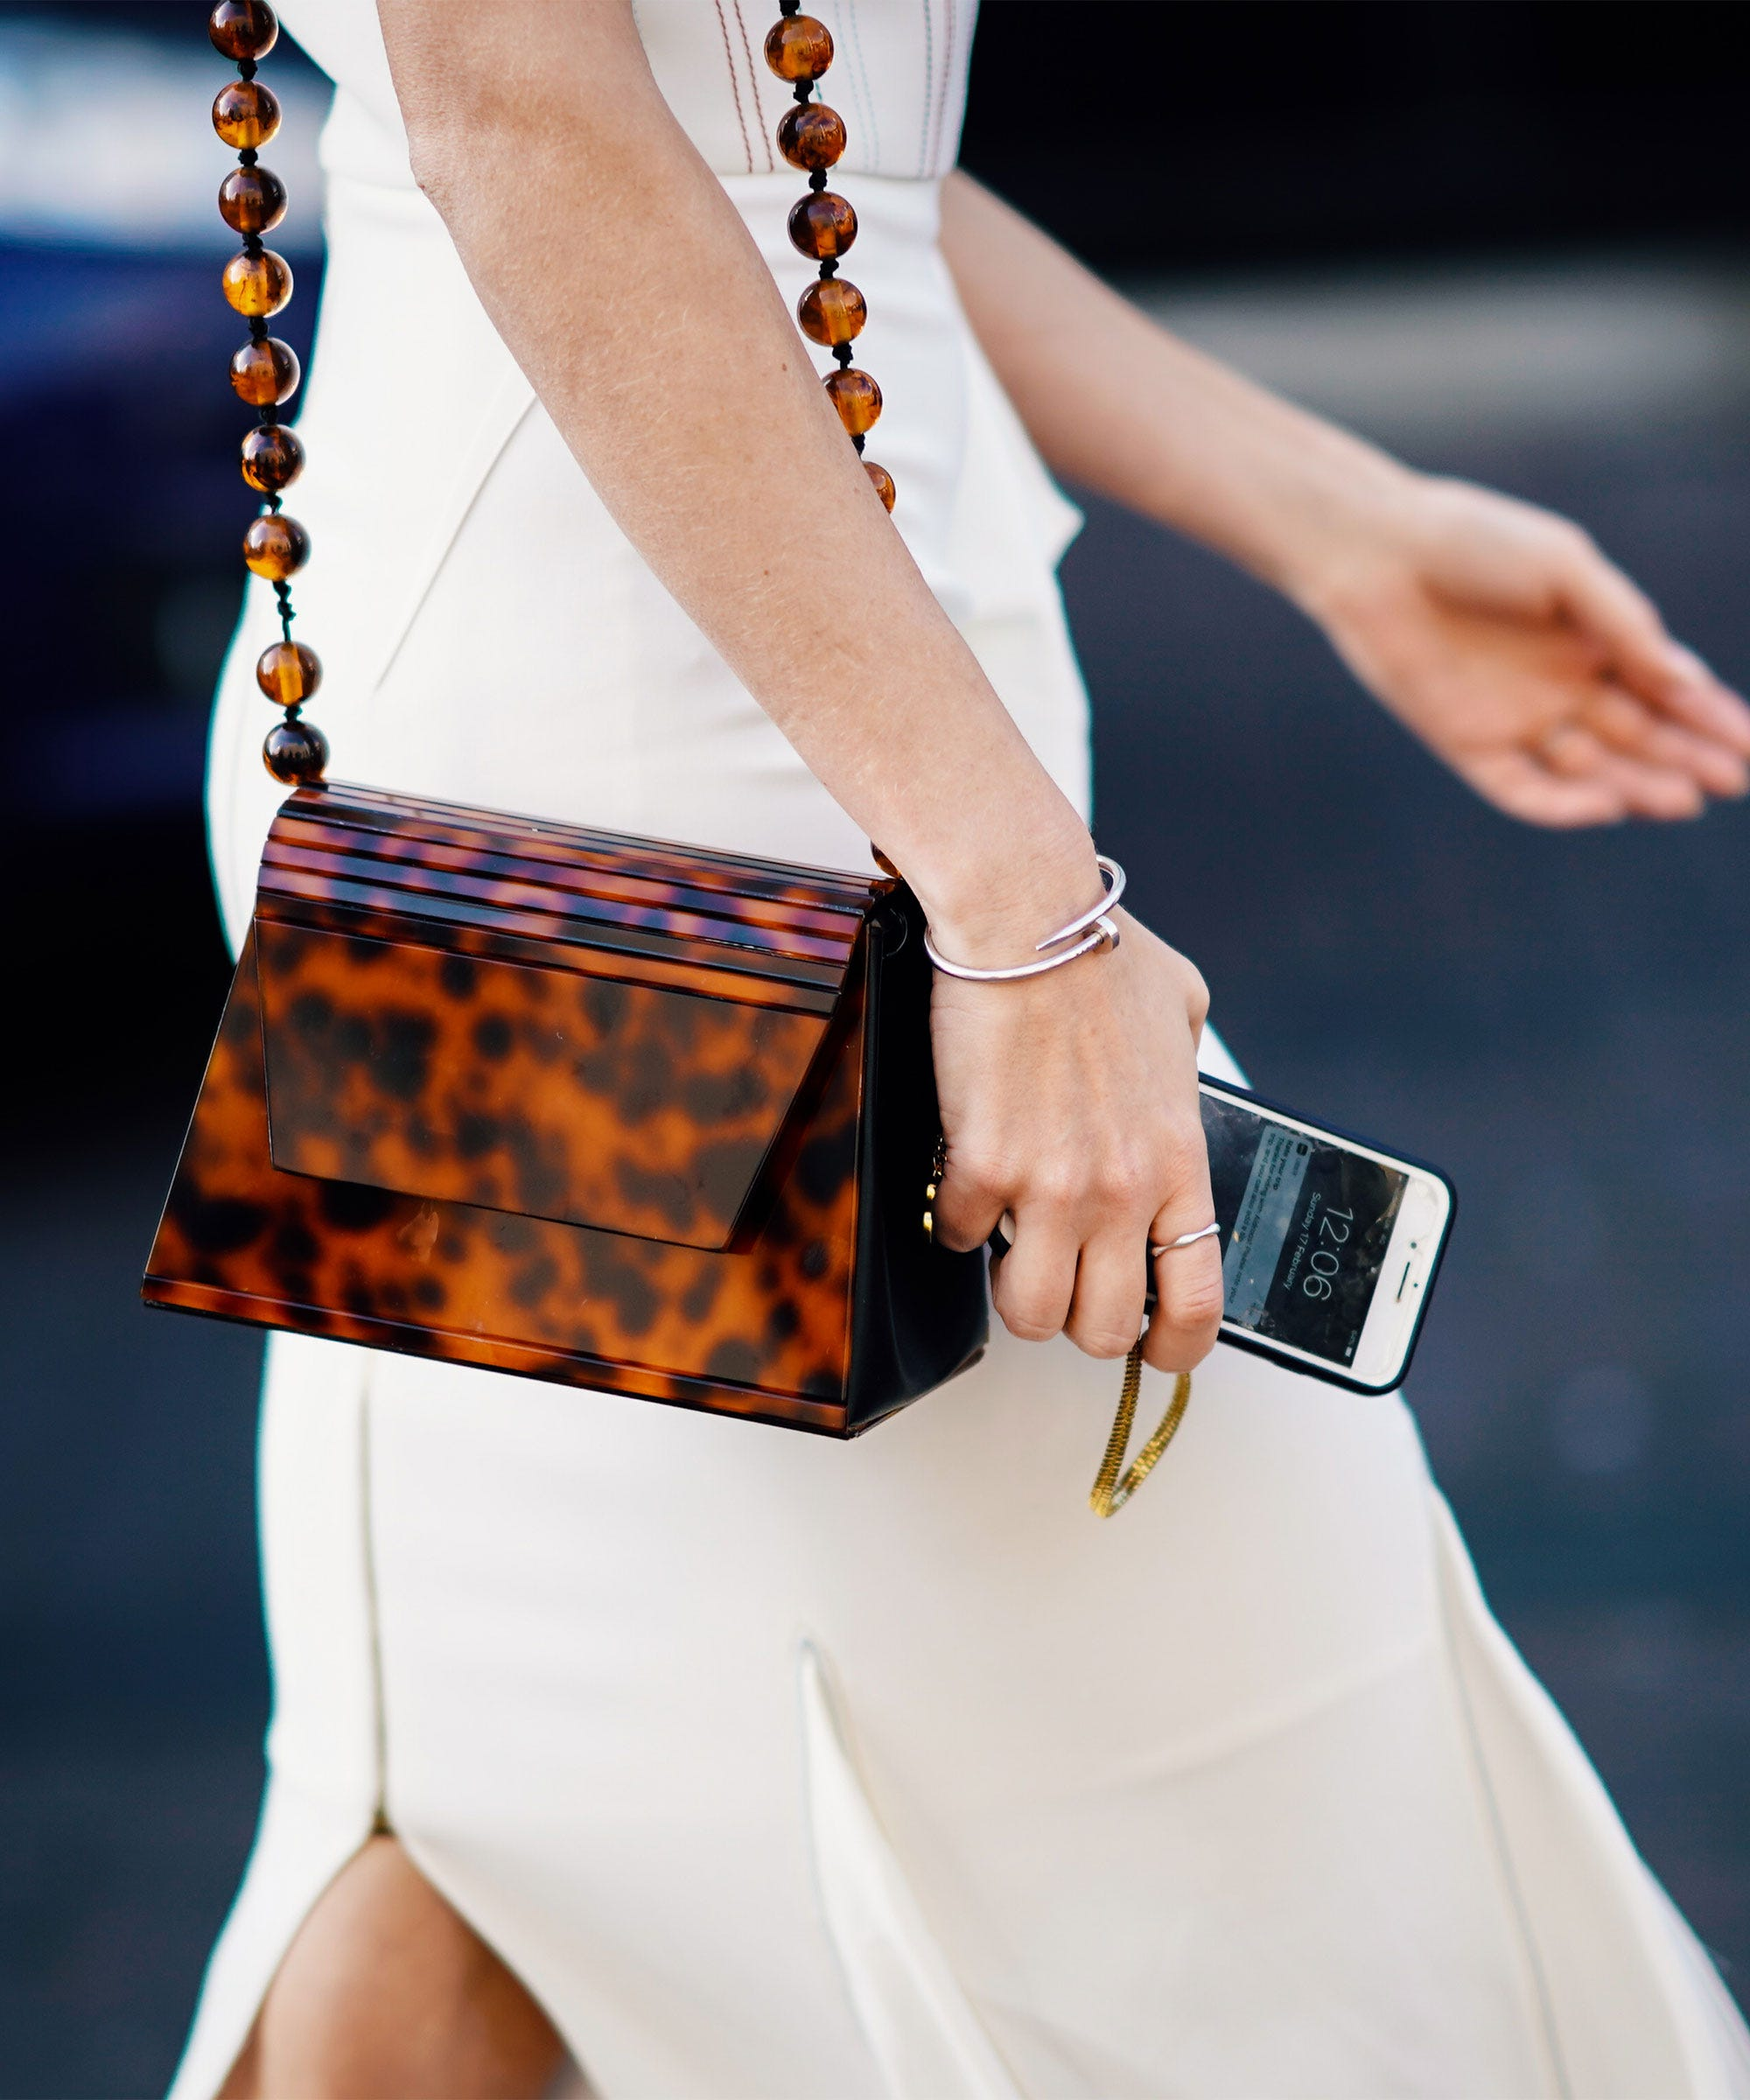 The Tortoiseshell Manicure Is The Chicest Pre-Fall Accessory